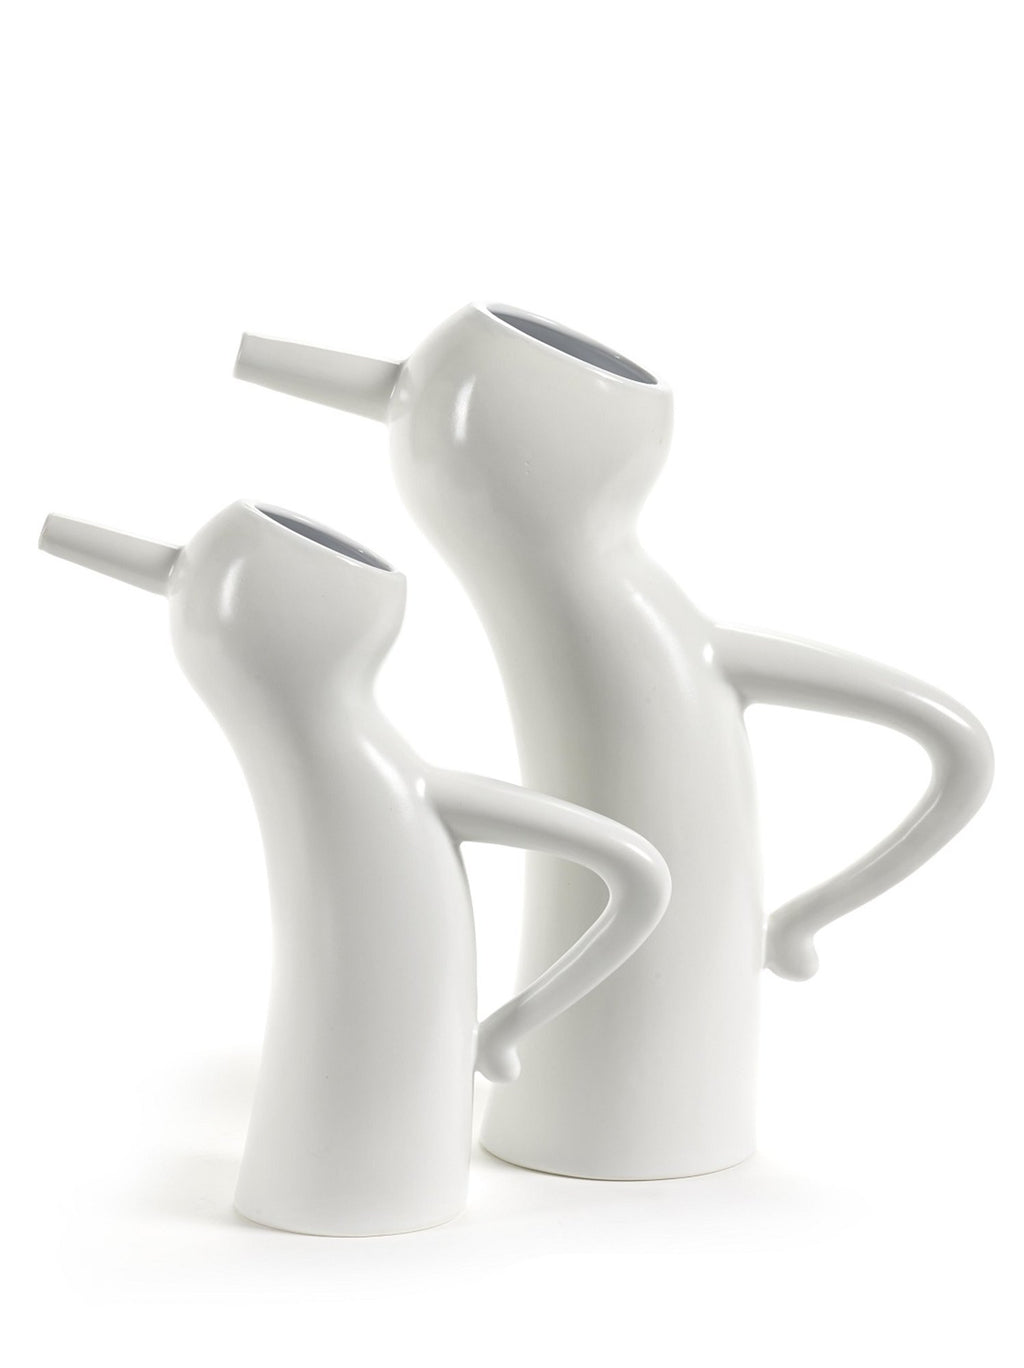 MONSIEUR CRUCHOT PITCHER